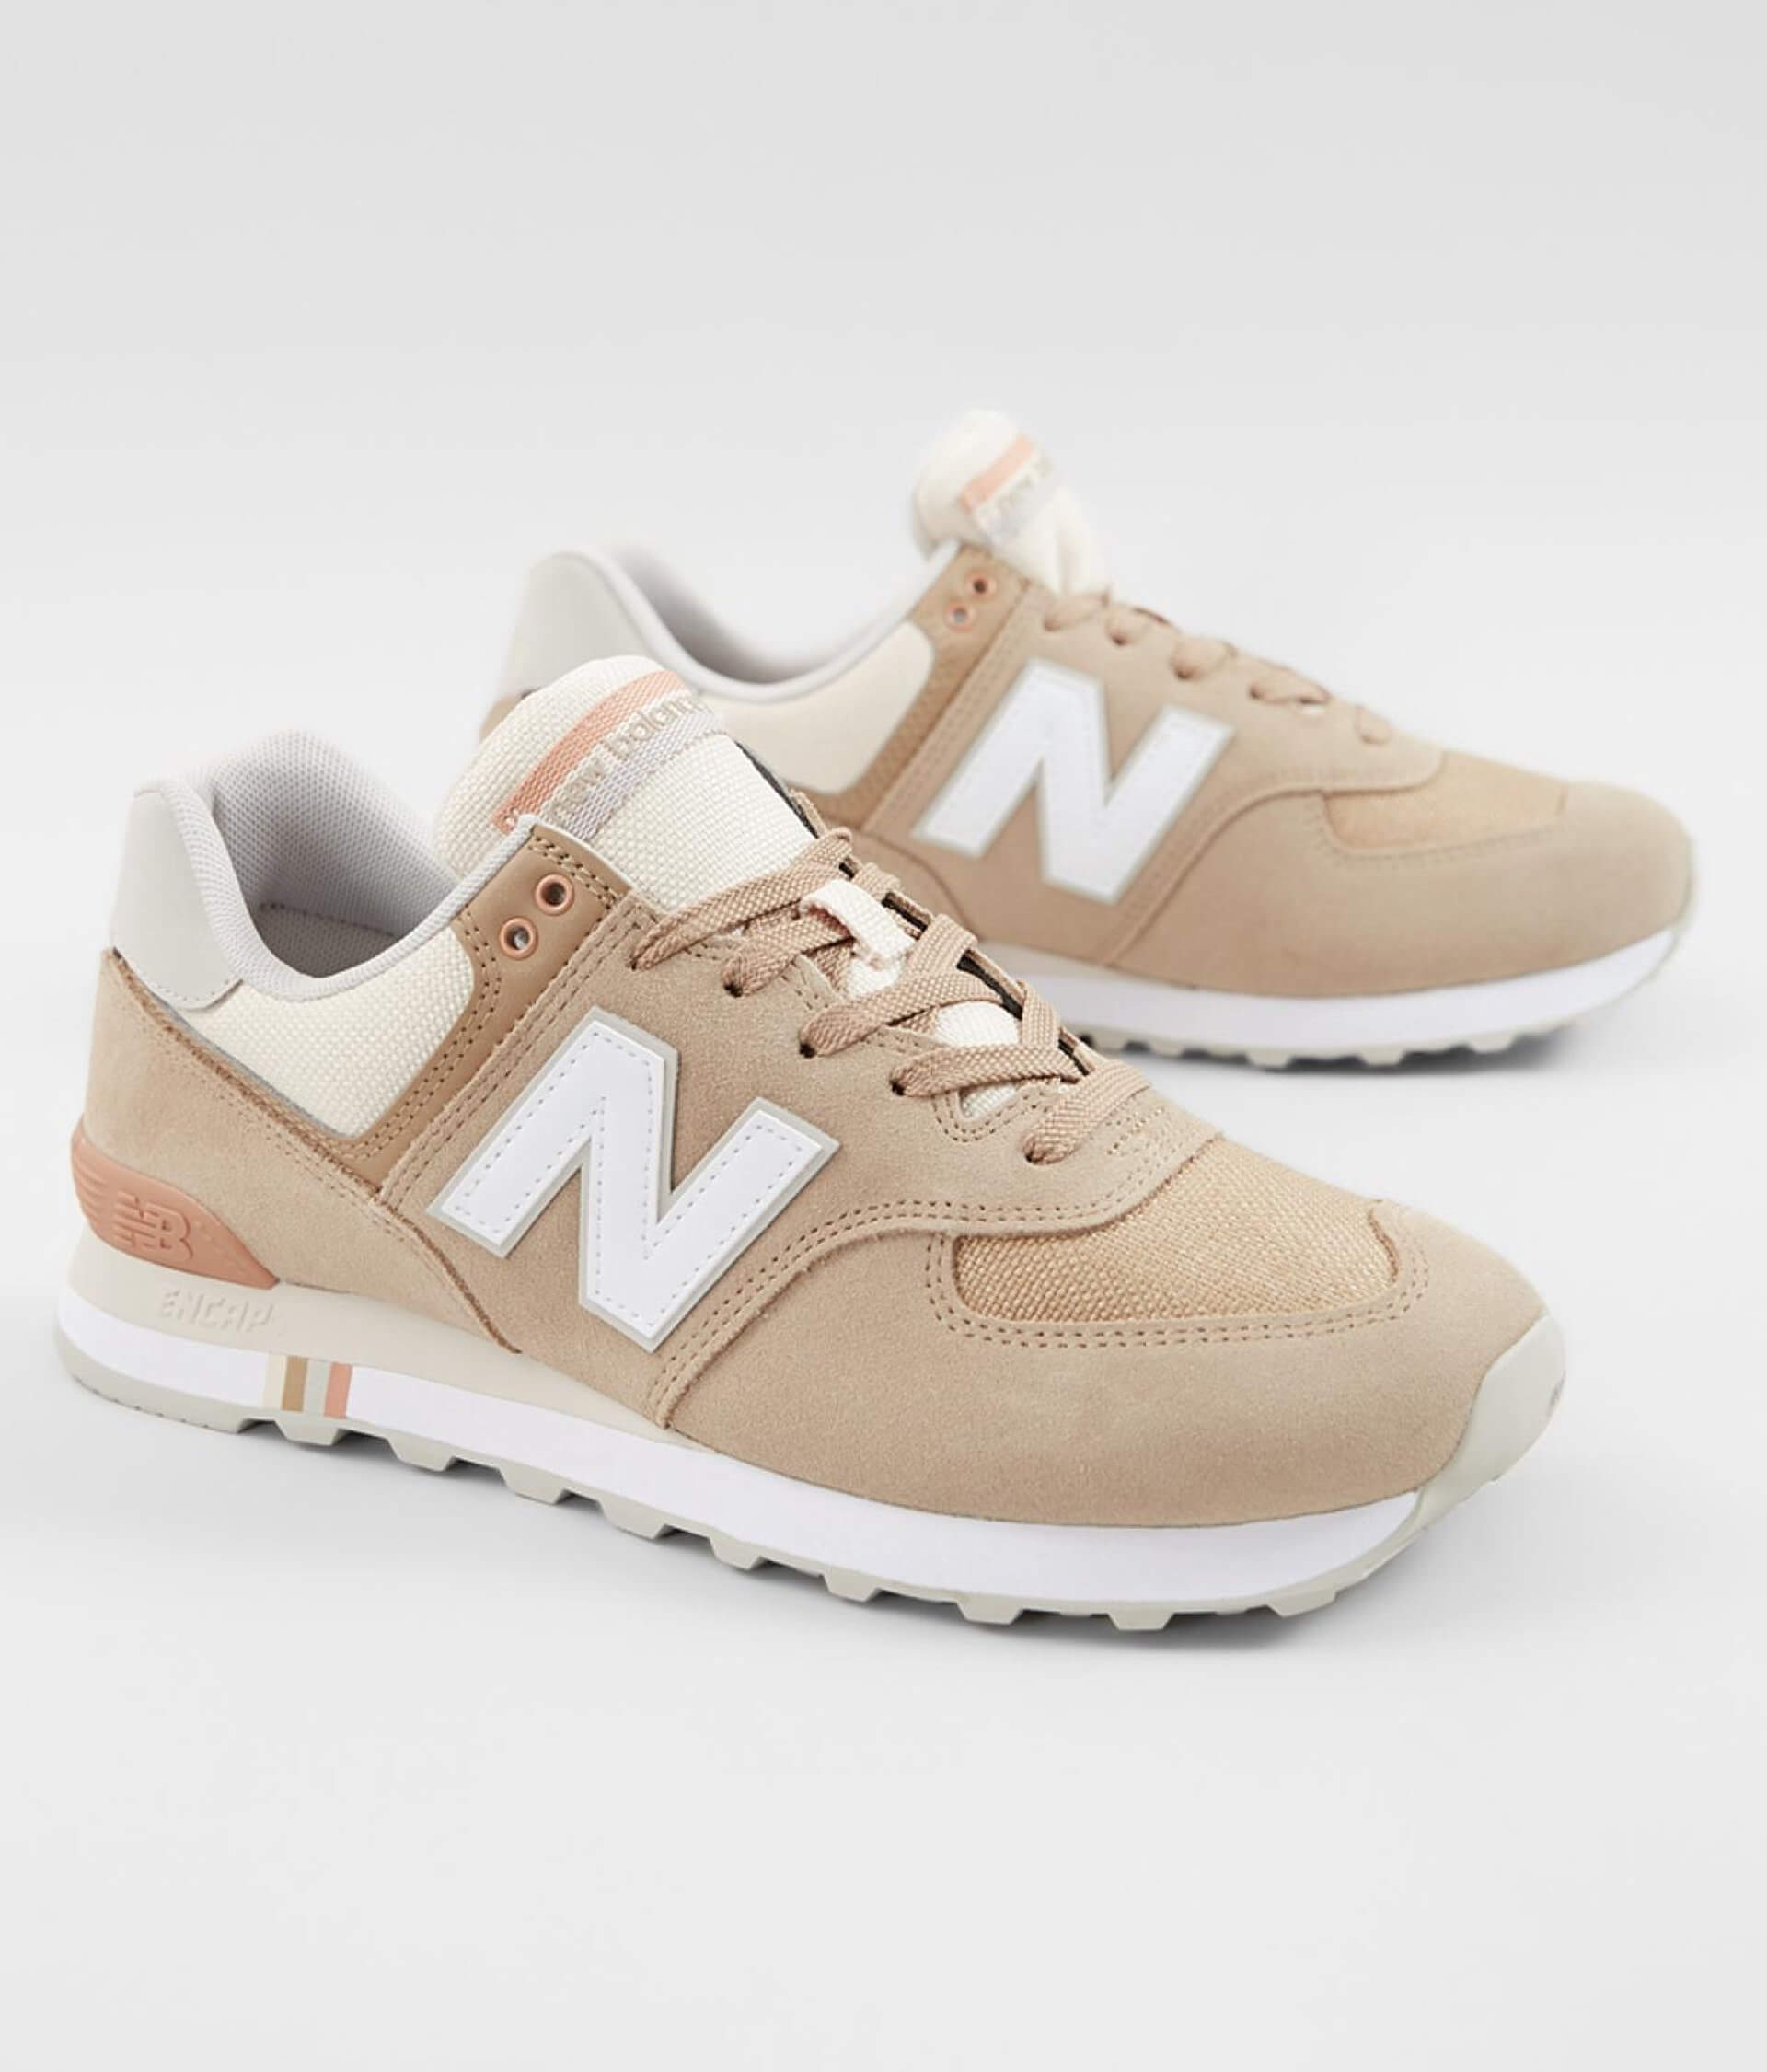 new balance 574 summer shore